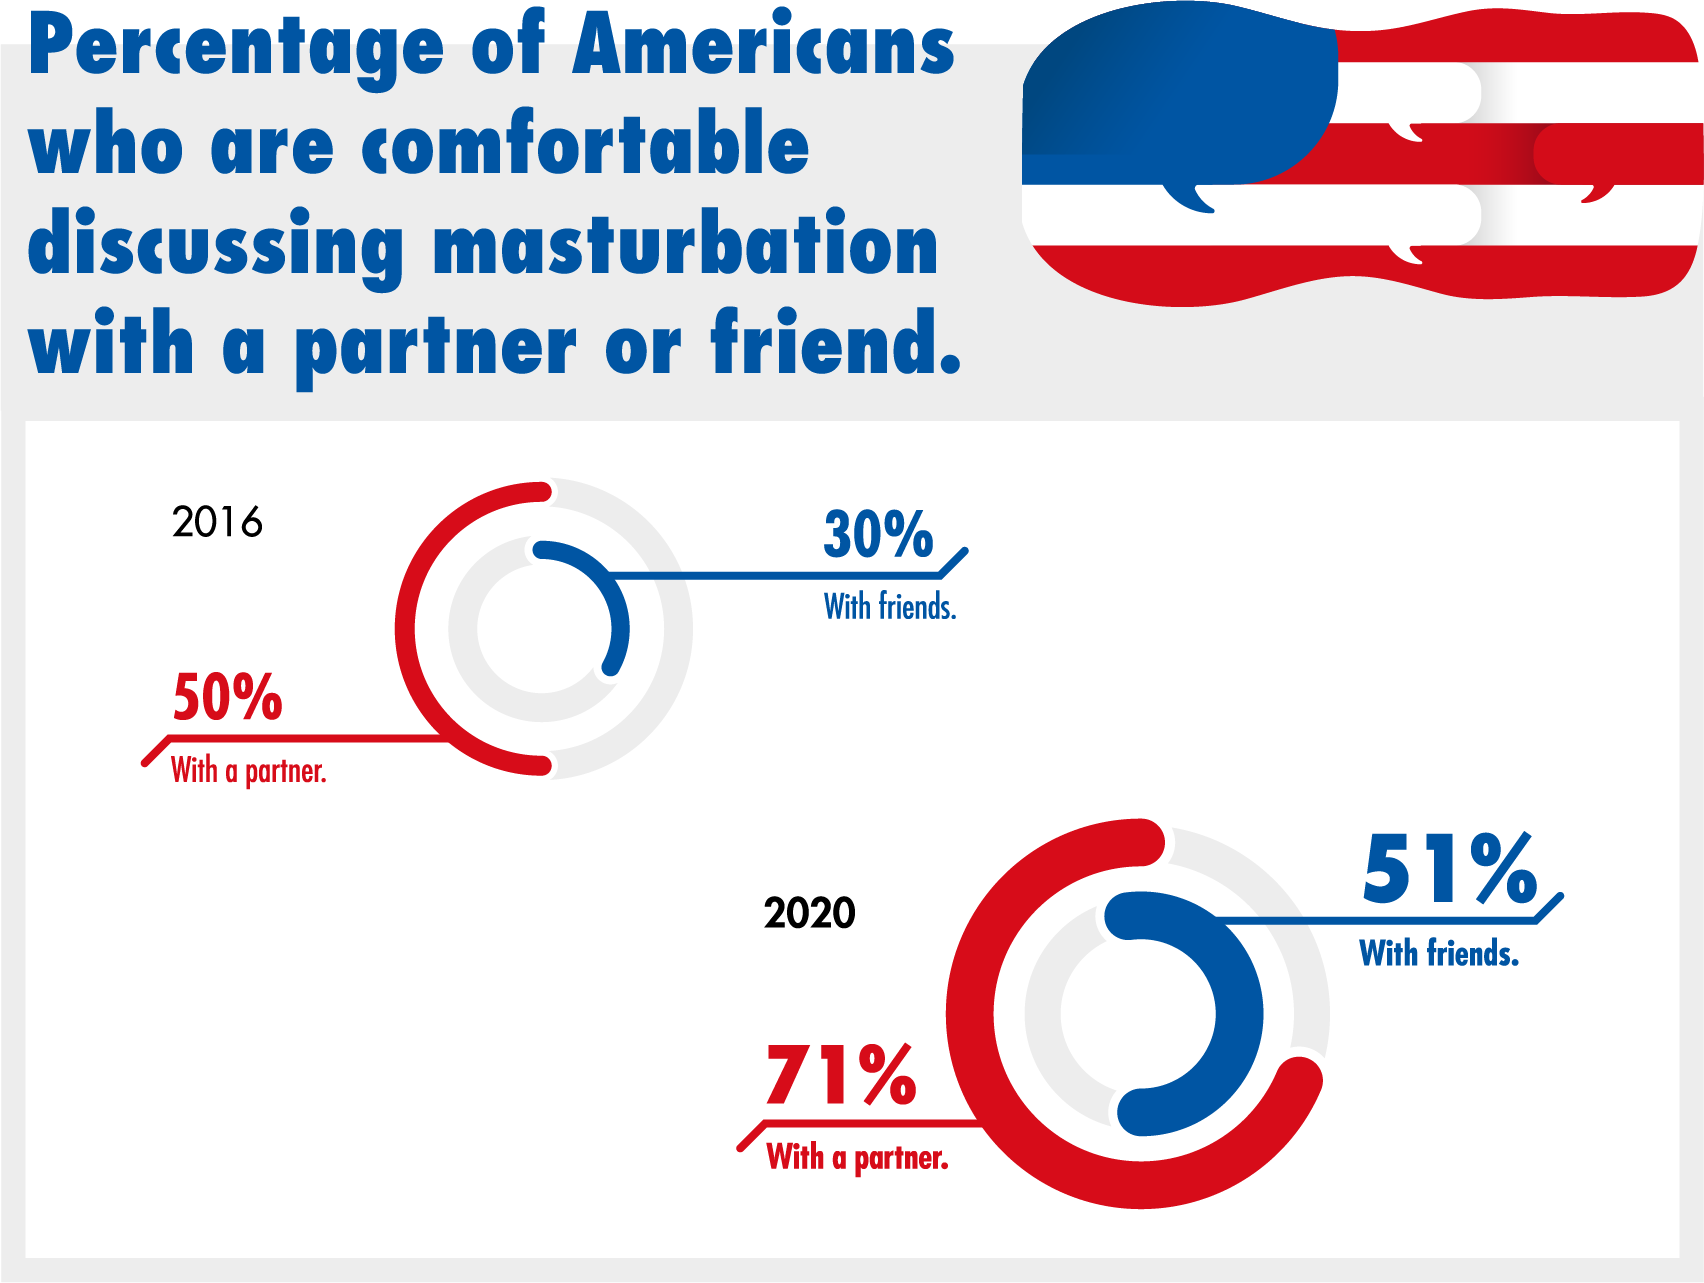 Percentage of Americans who are comfortable discussing masturbation with a partner or friend.